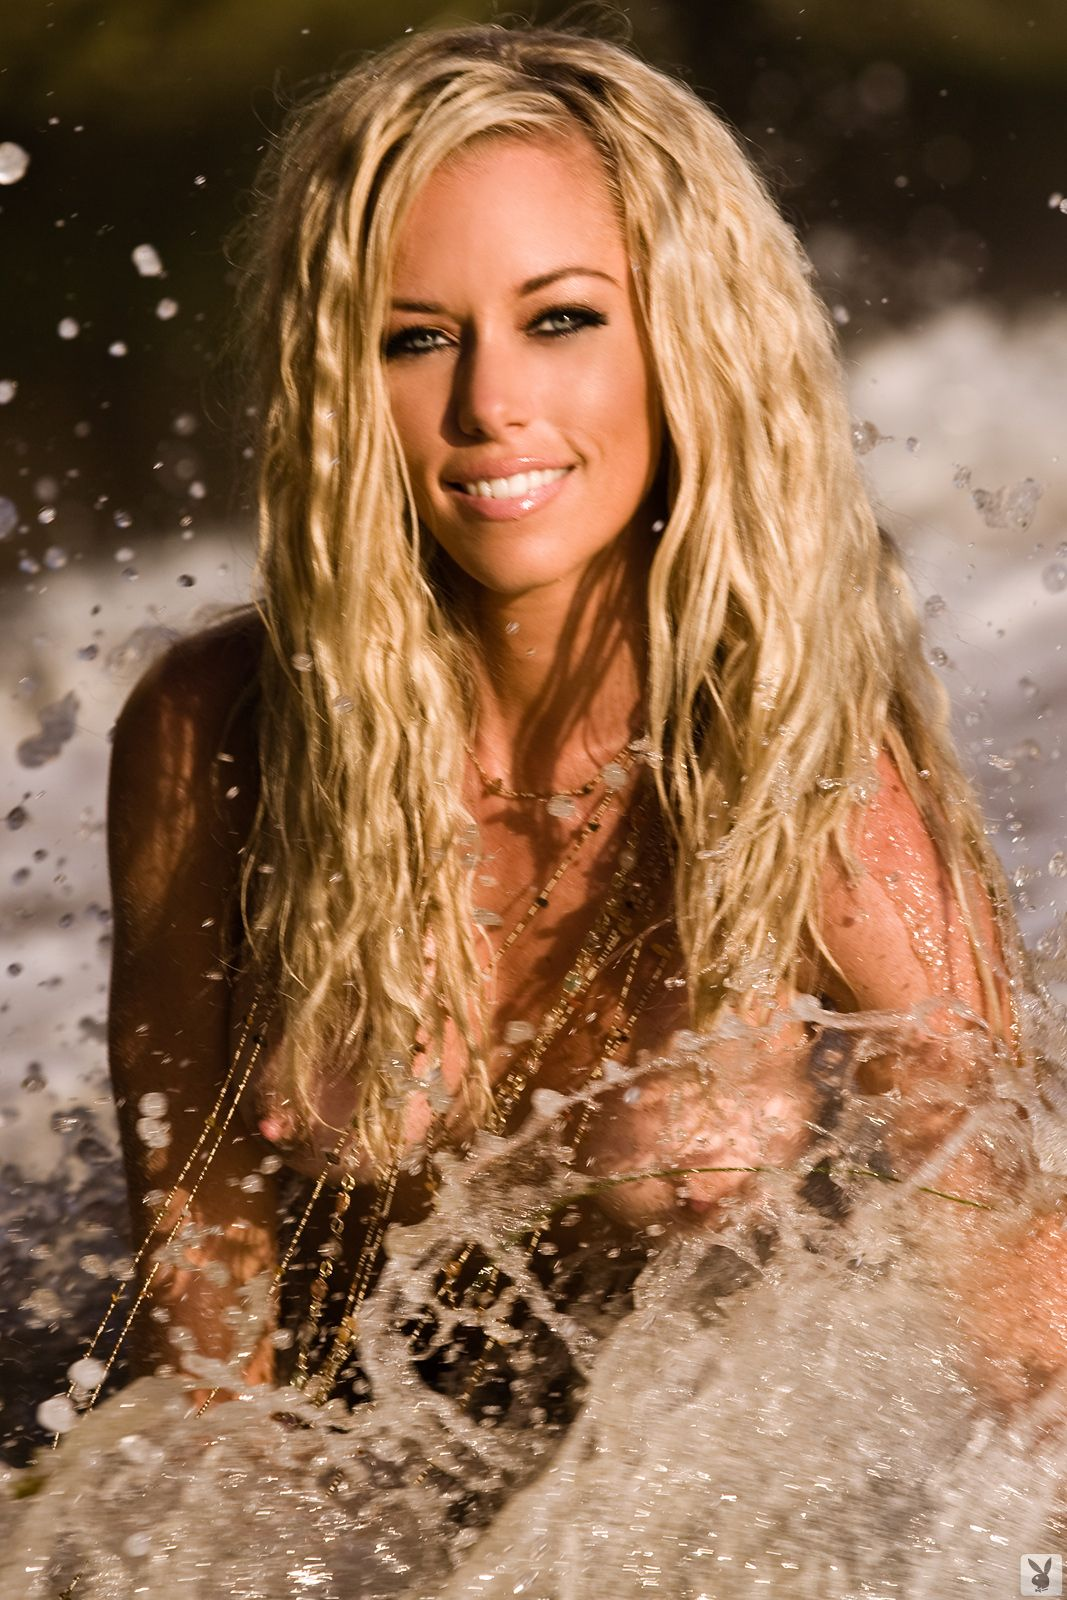 Kendra wilkinson having sex in private sex tape pichunter